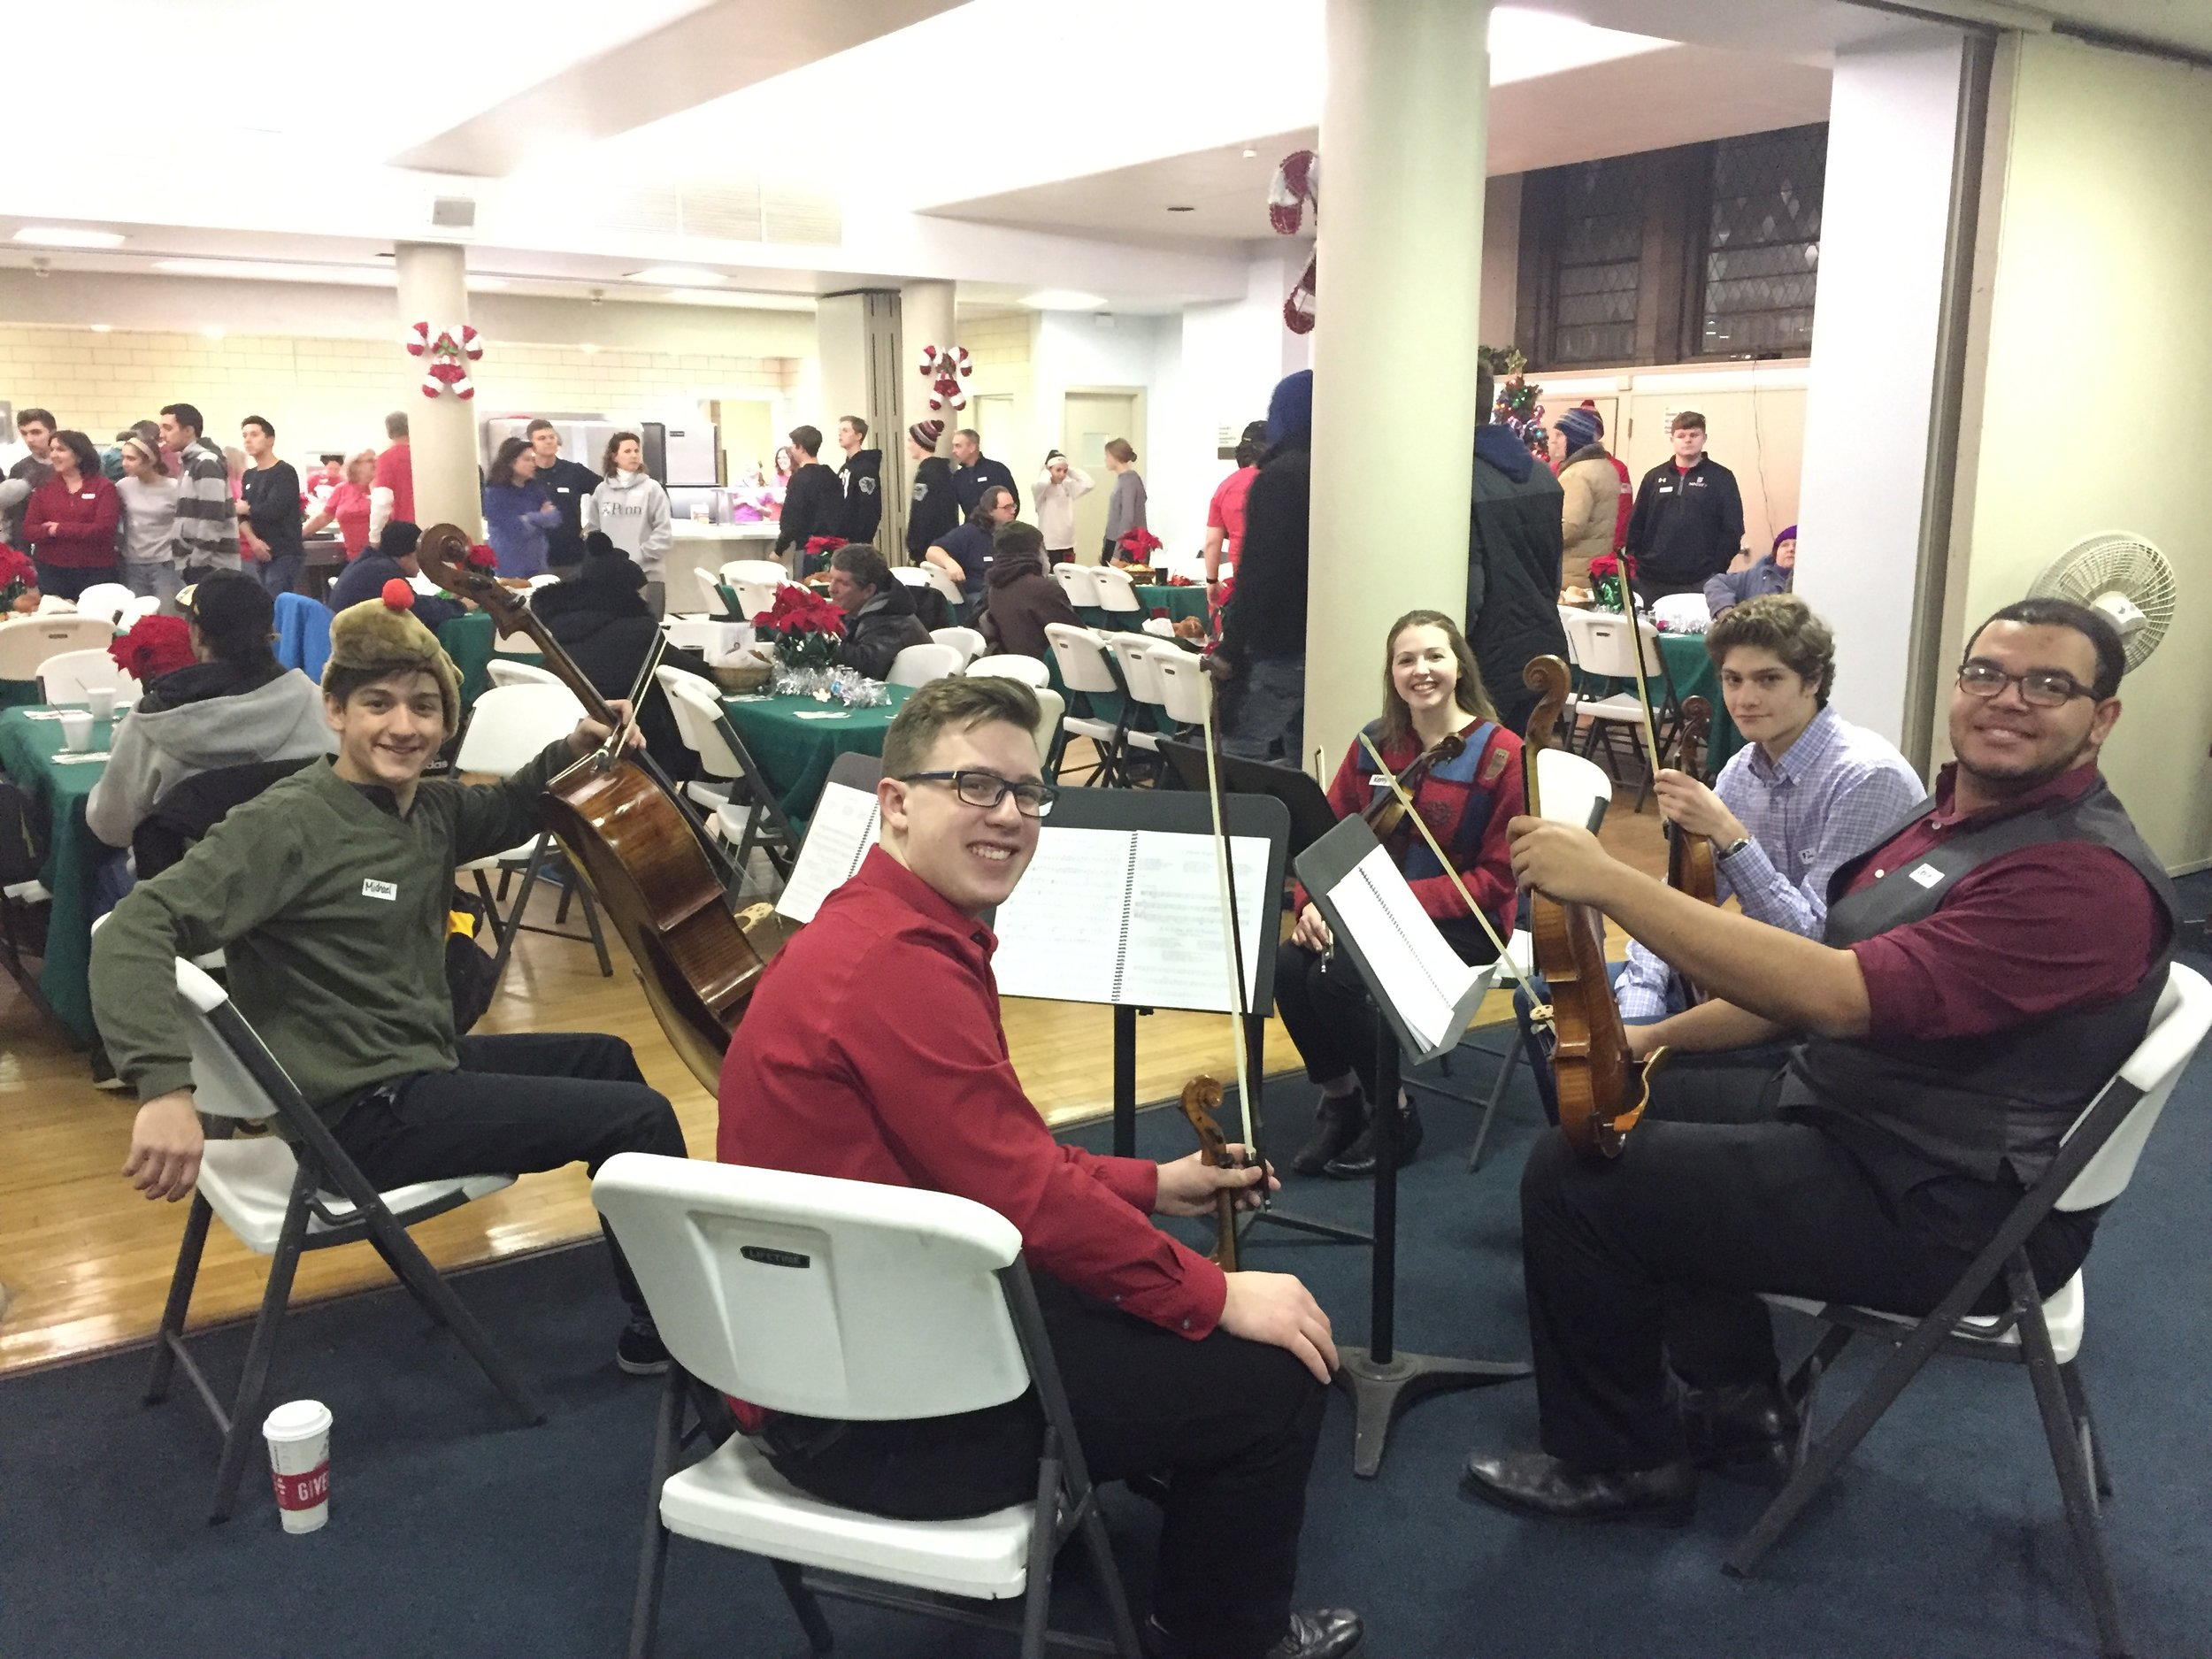 A Gift of Holiday Cheer - Tuesday, December 26, 2017A quintet of PYSO members and alum - Michael, Jimmy, Kerry, Zach, and Devin -performed for the downtown homeless community at their Tuesday night gathering, held every Tuesday night at First Presbyterian Church, organized by Outreached Arms ministry.